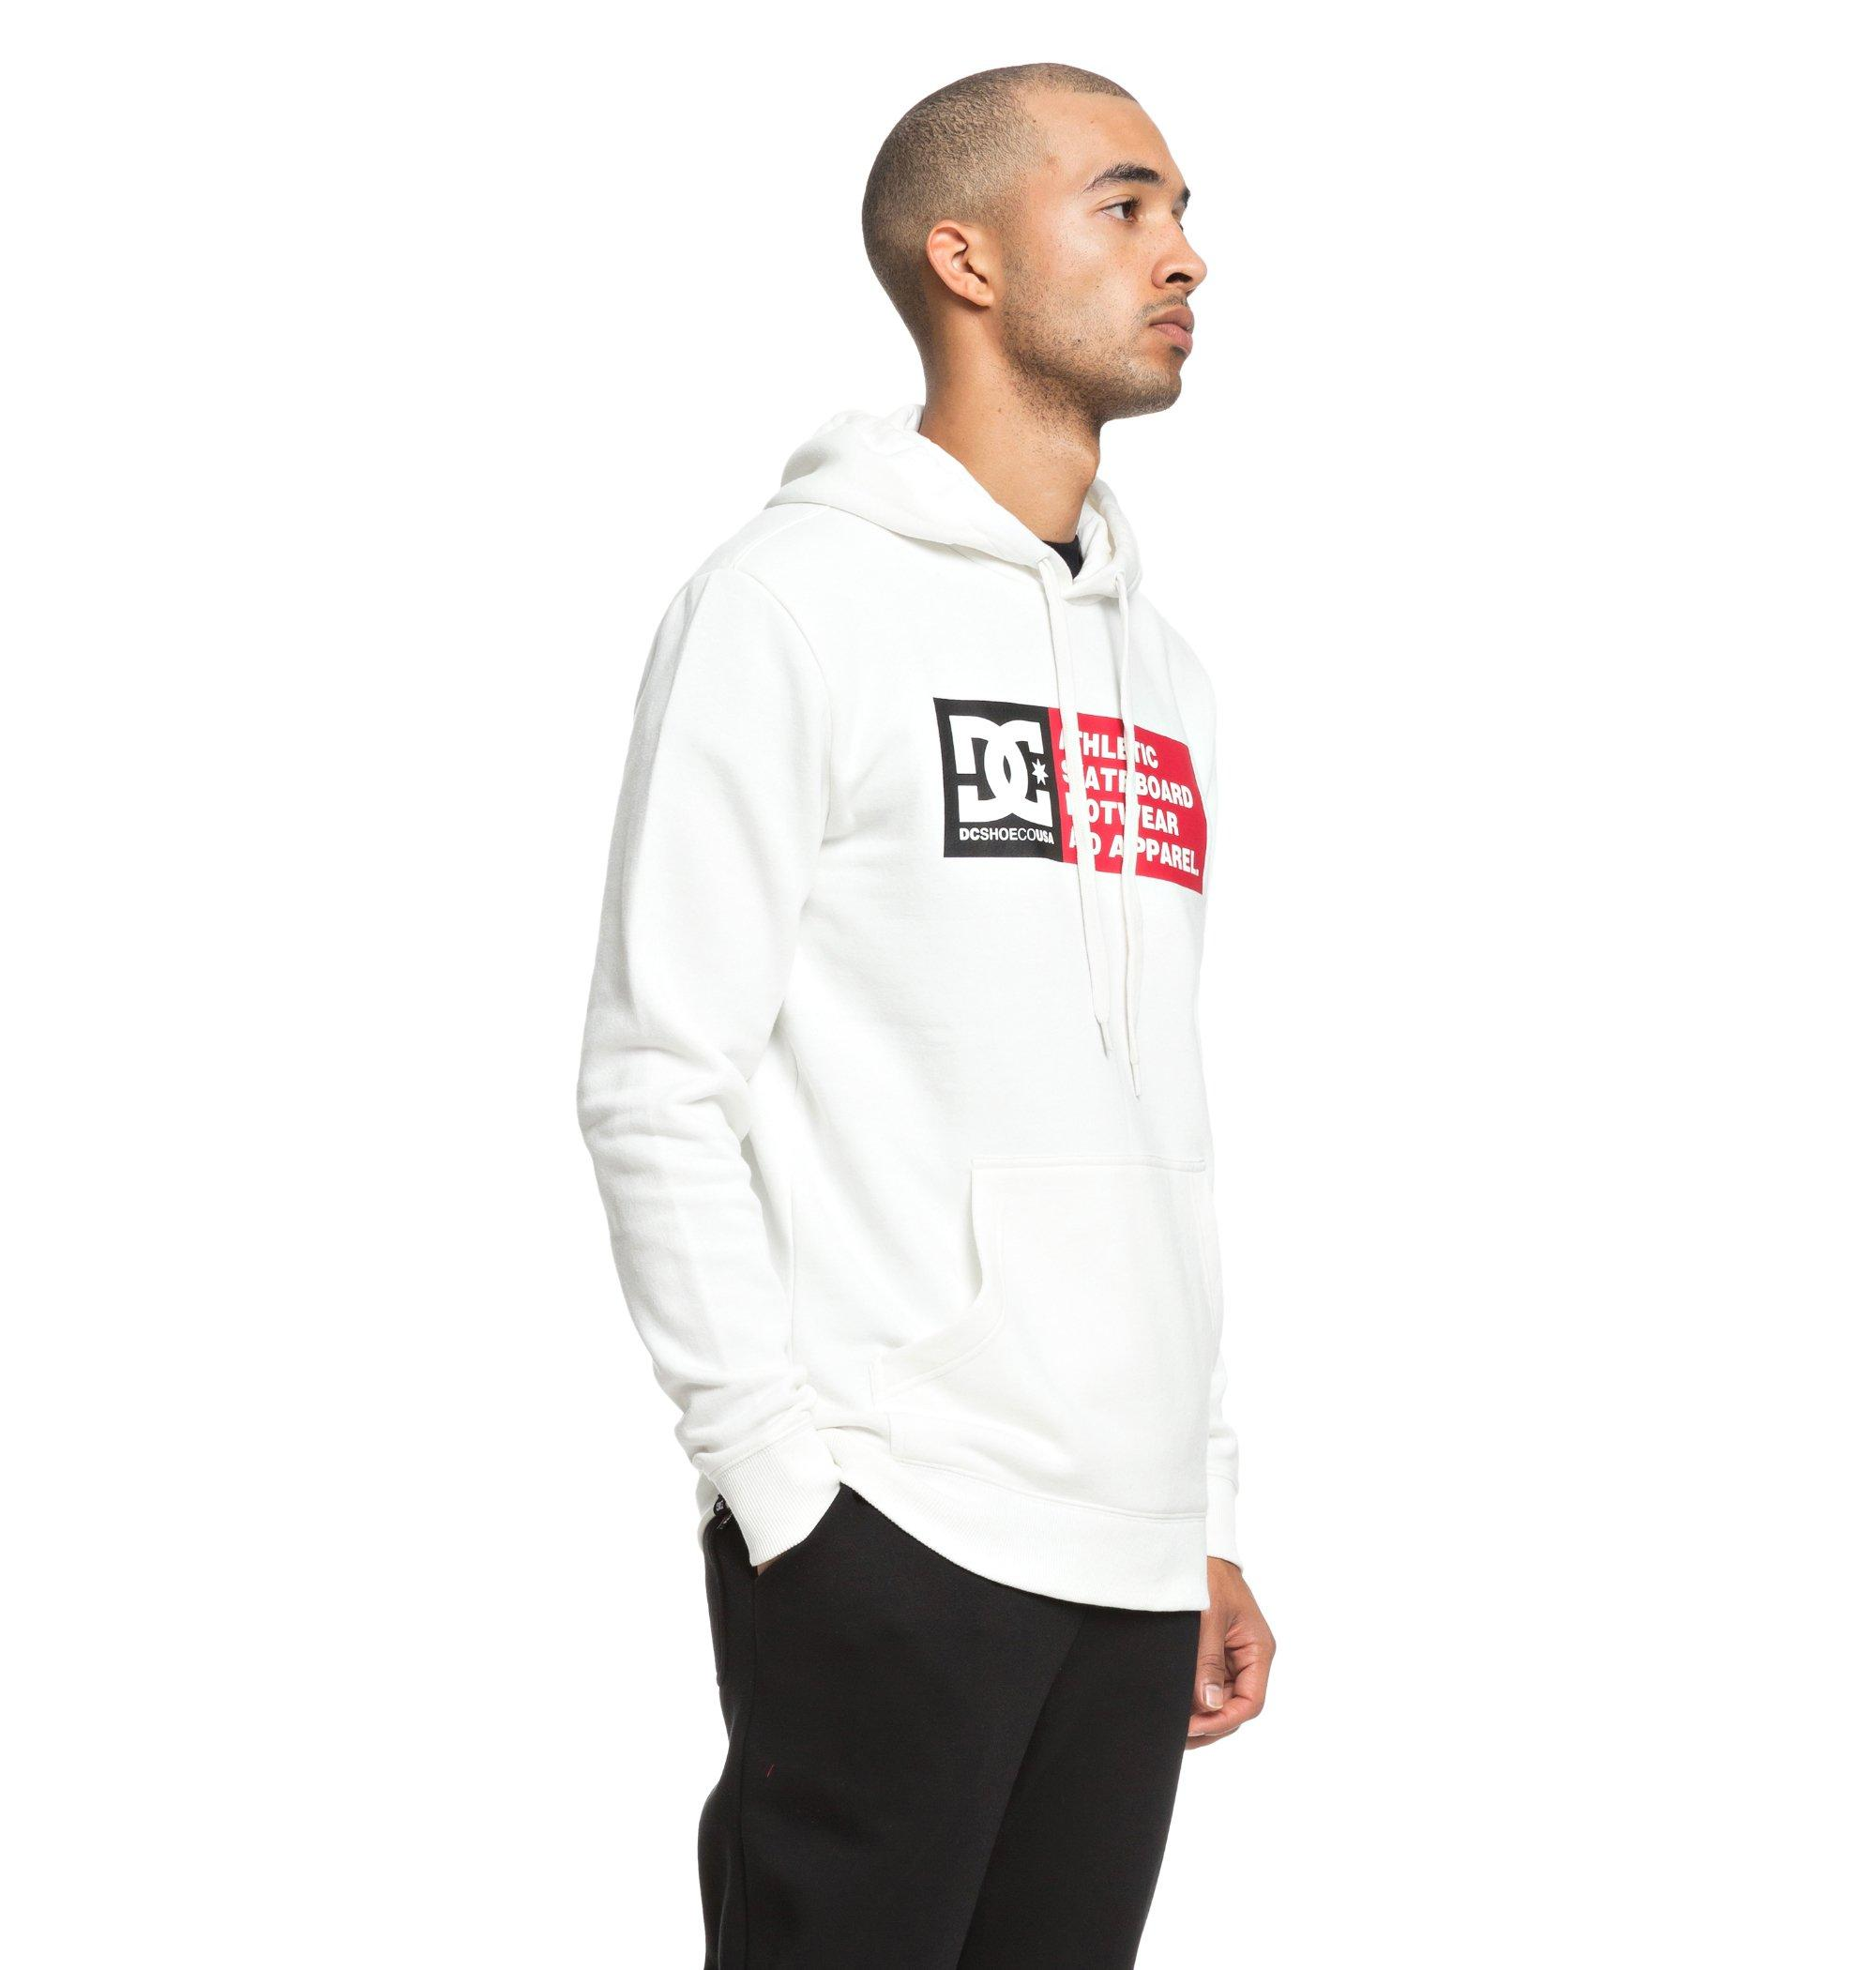 Sudadera Dc Shoes modelo Vertical Zone en color blanco para hombre-f